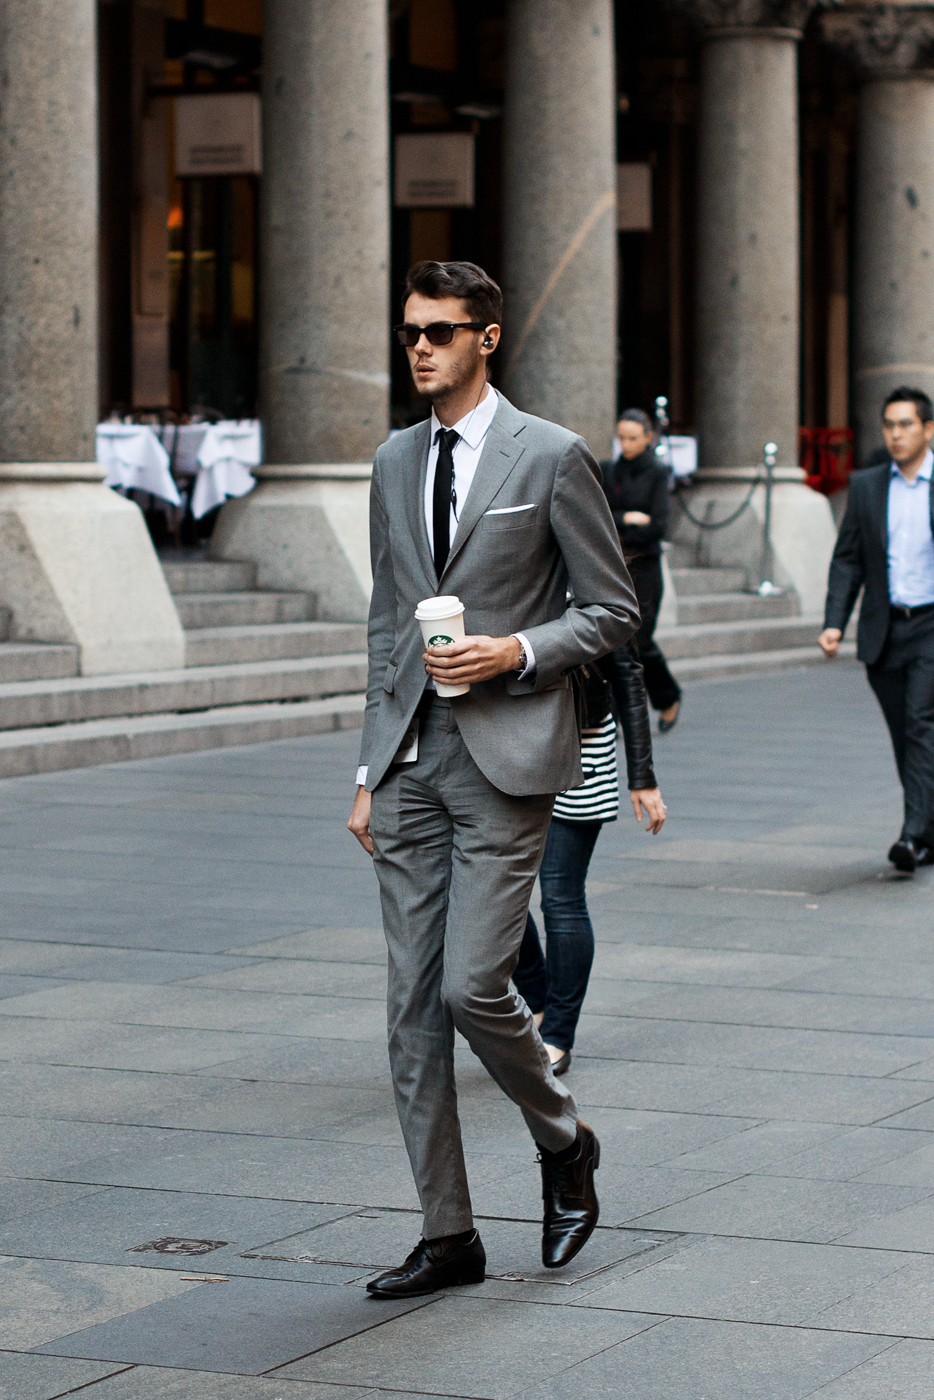 Lungo.   Similar look:   J. Crew Ludlow suit jacket with double vent in Italian oxford cloth  .